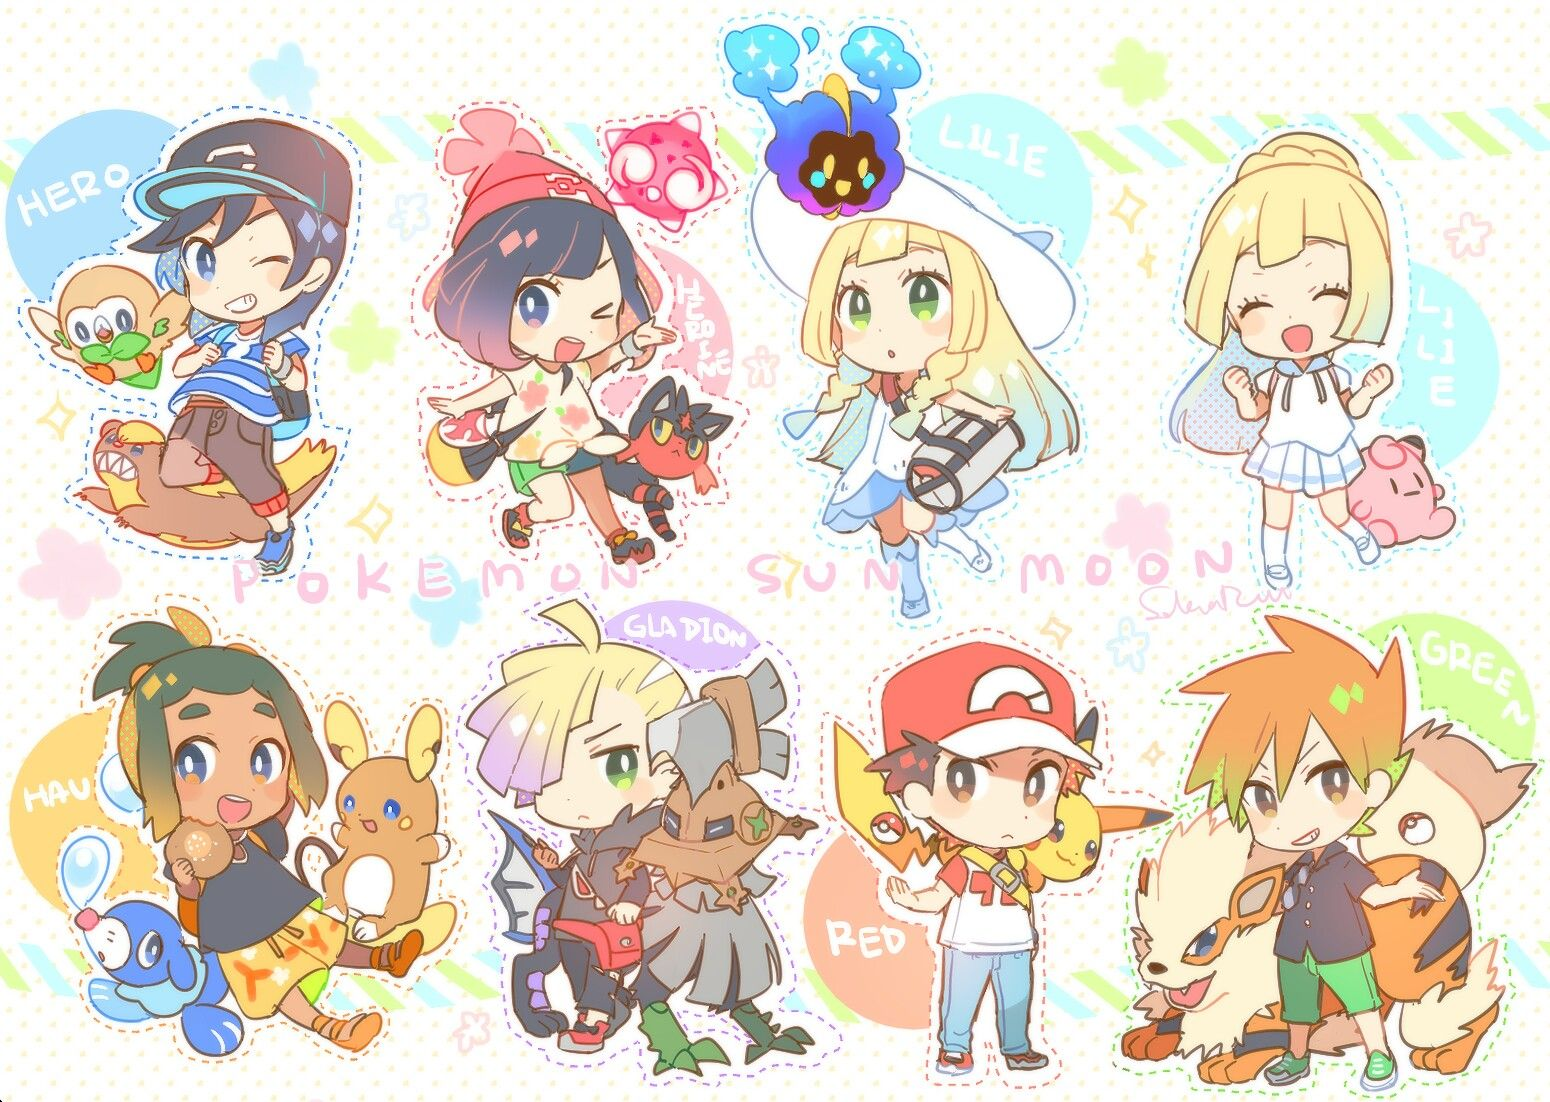 Pin by ♡Zai♡ on AAA Pokemon, Anime, Pokemon characters